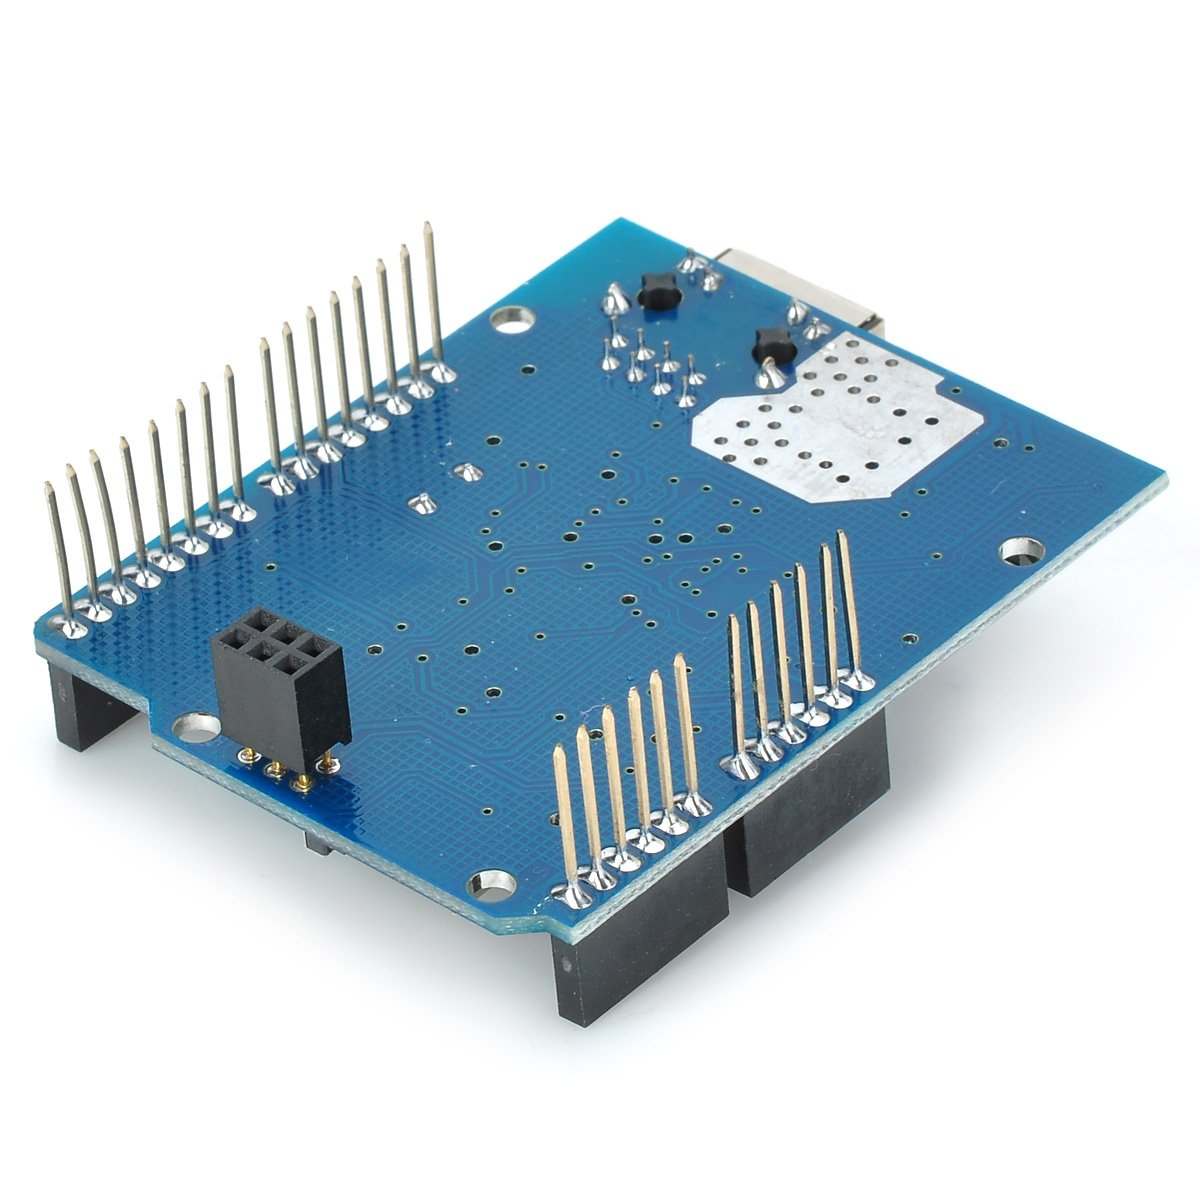 Blue Ethernet Network Expansion Board Micro SD Card Slot for Arduino by IDS Home (Image #3)